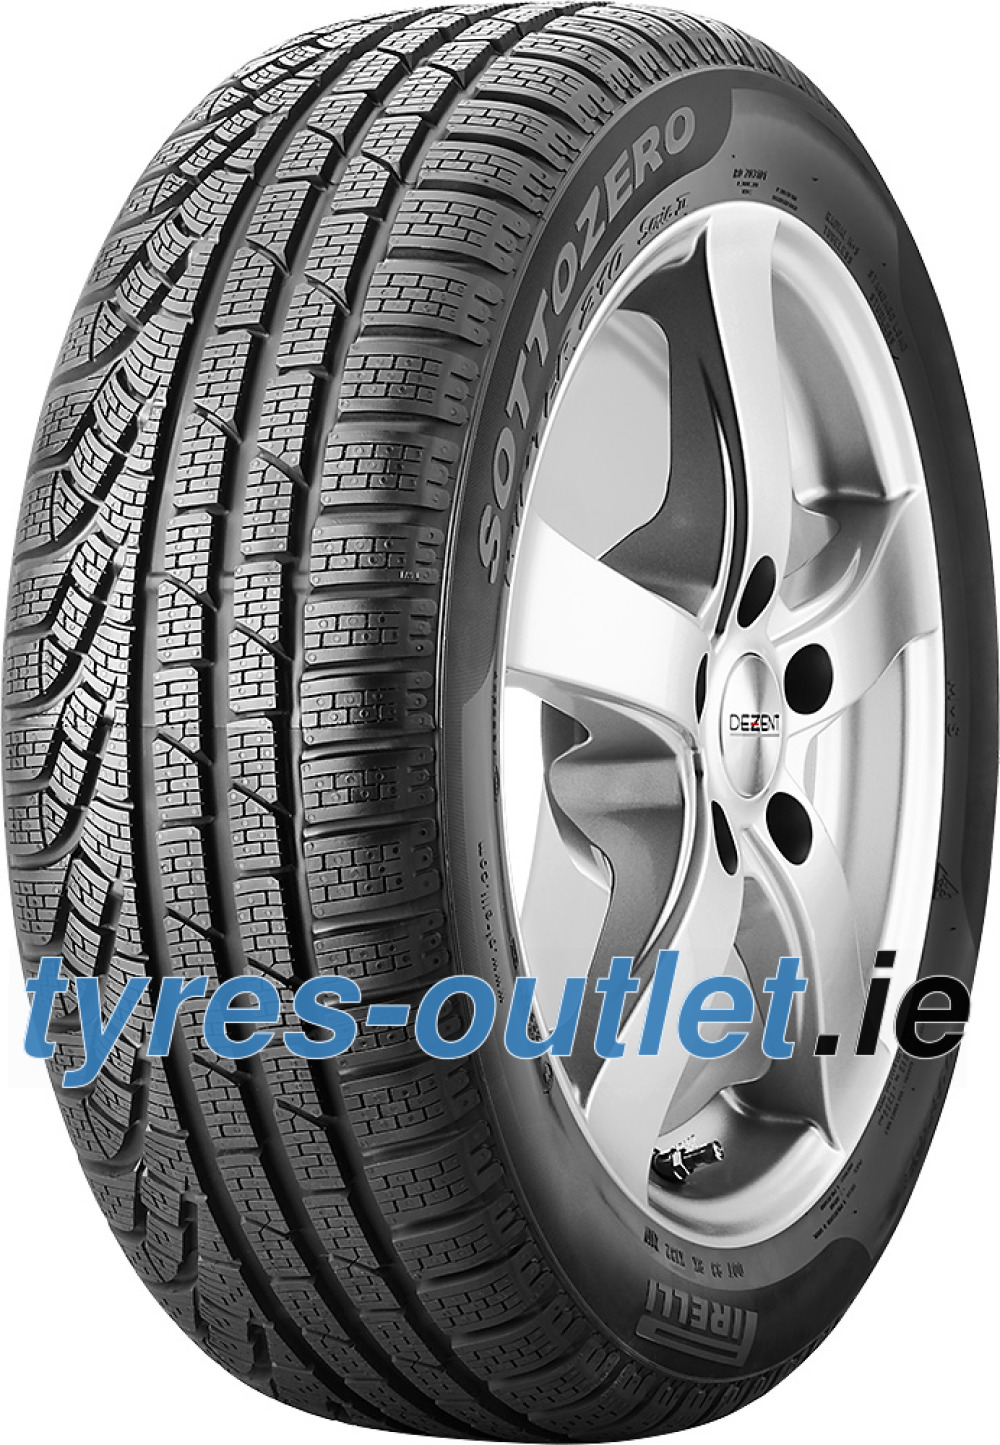 Pirelli W 210 SottoZero S2 ( 225/50 R18 99H XL AO, with rim protection (MFS) )